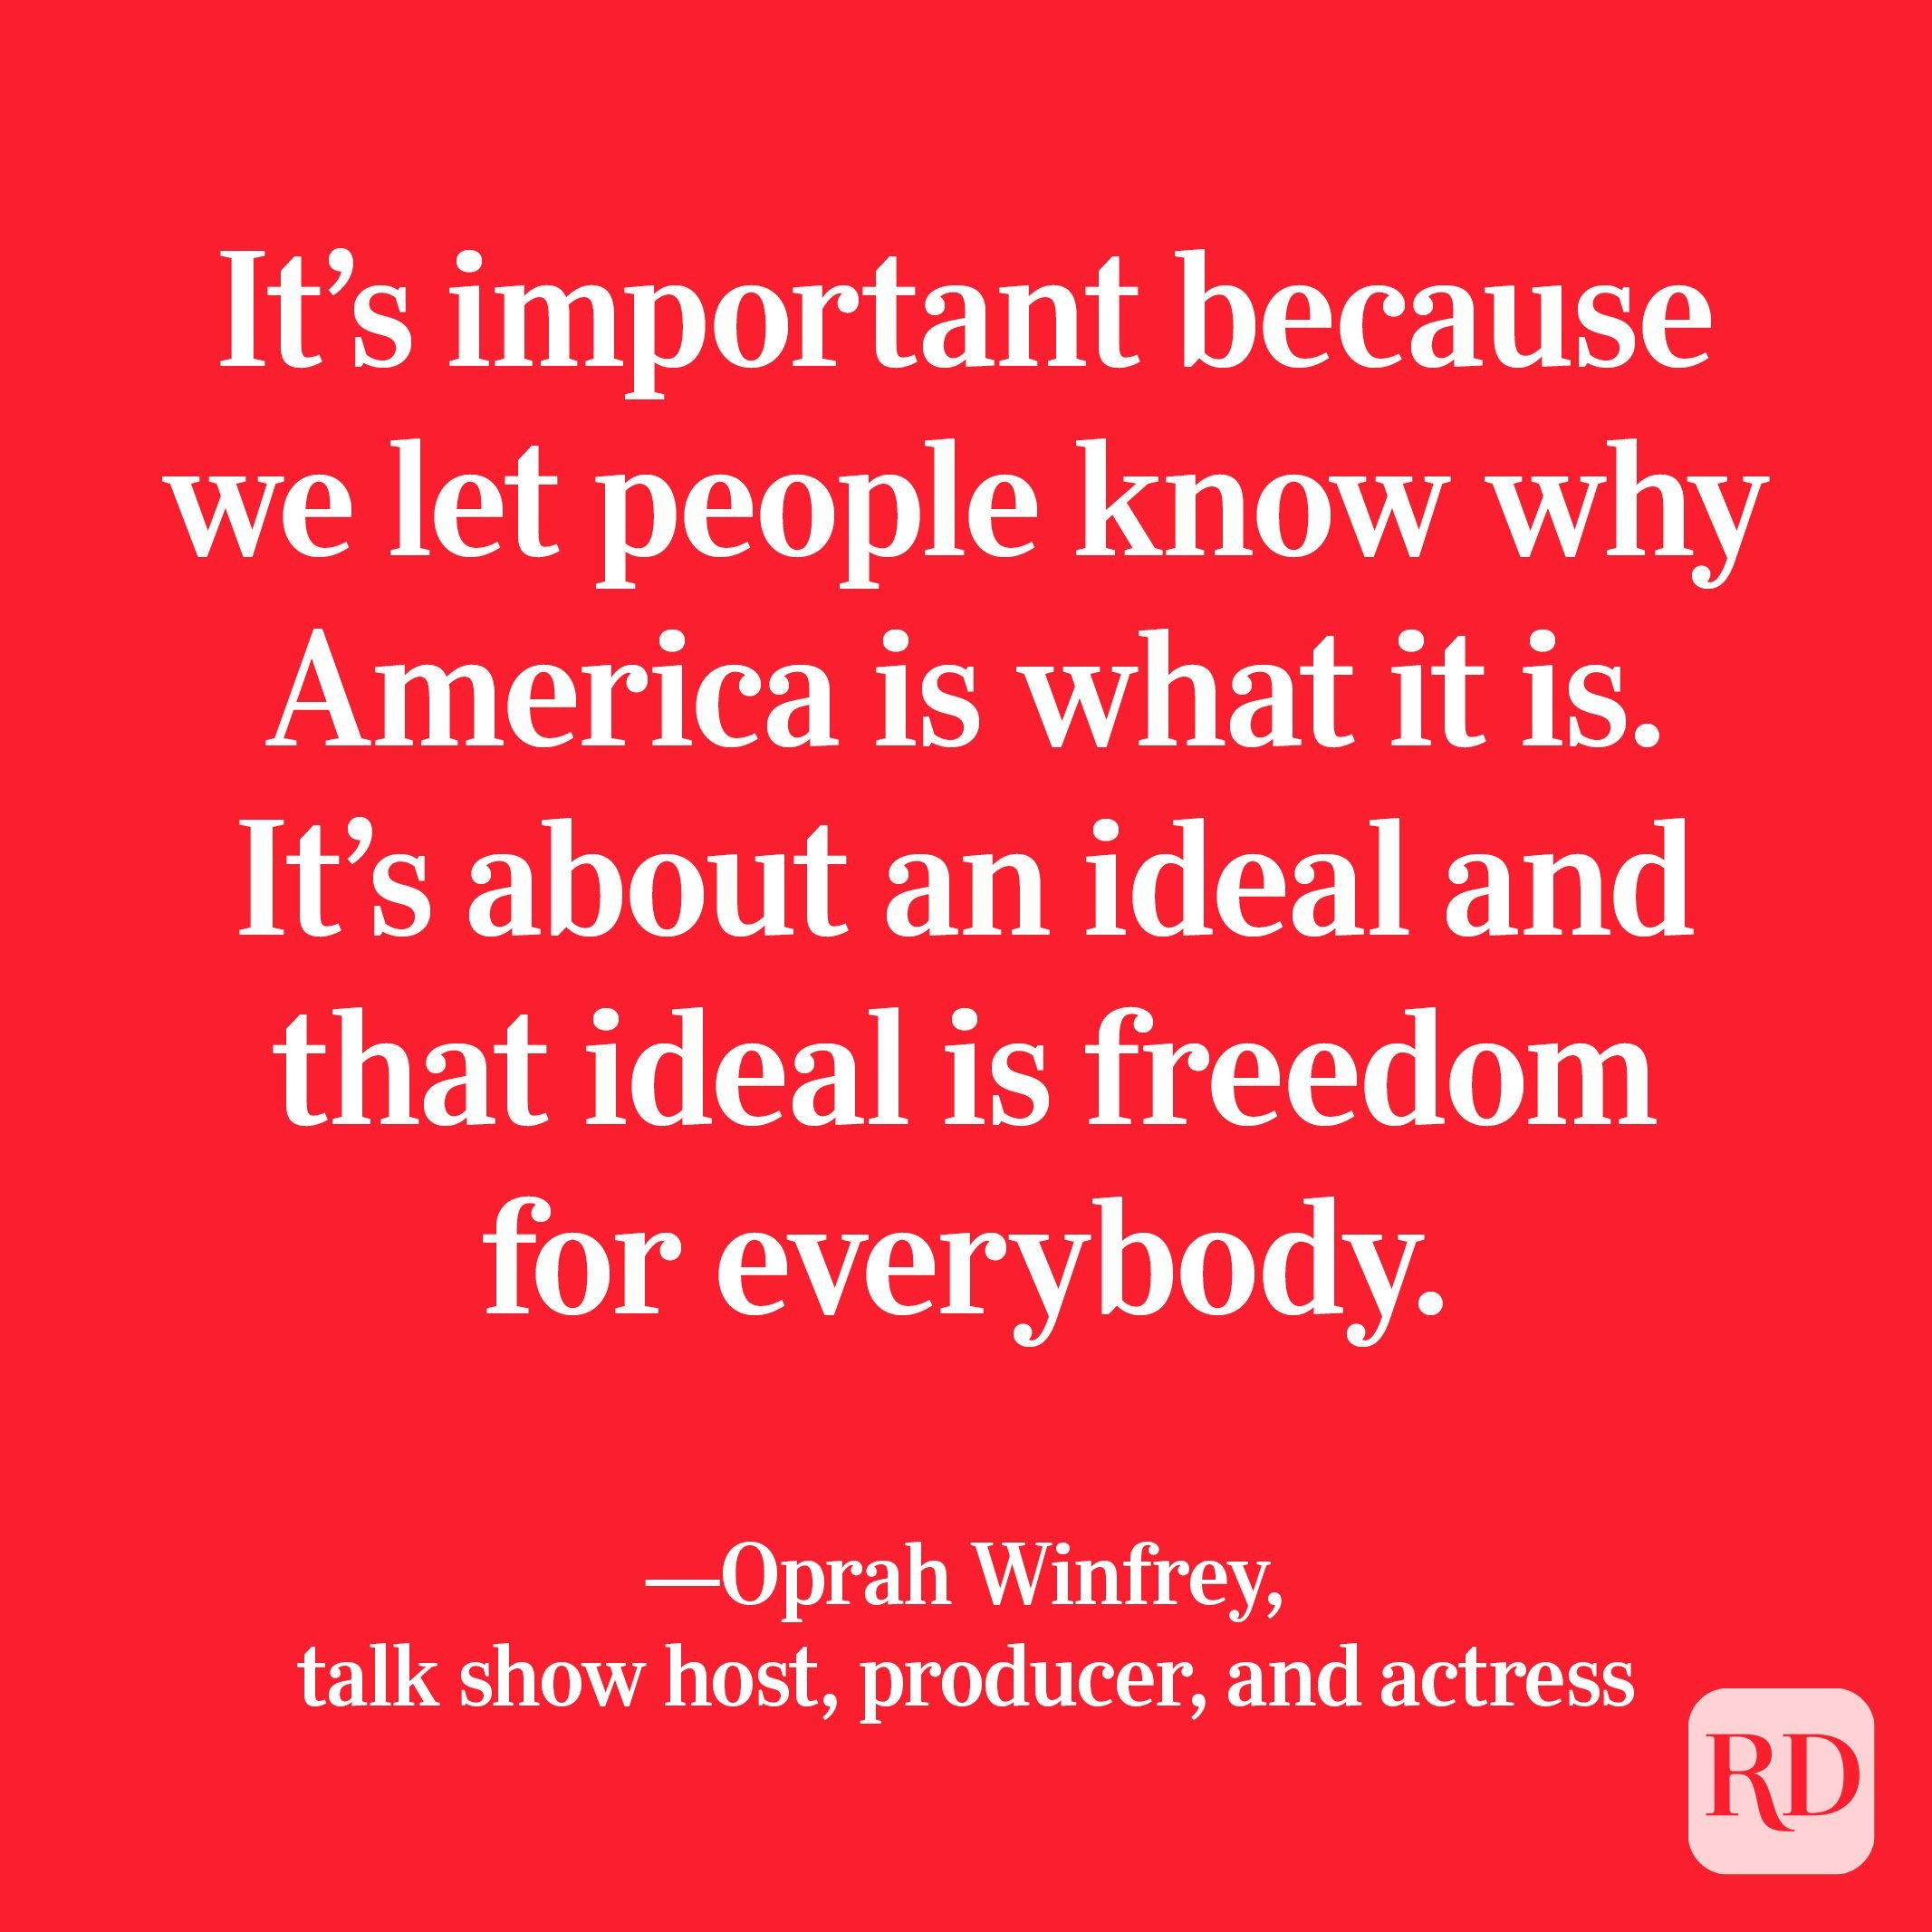 """""""It's important that we establish that we are a country that has open arms and not closed borders for people. It's important because we let people know why America is what it is. It's about an ideal and that ideal is freedom for everybody."""" —Oprah Winfrey, talk show host, producer, and actress"""